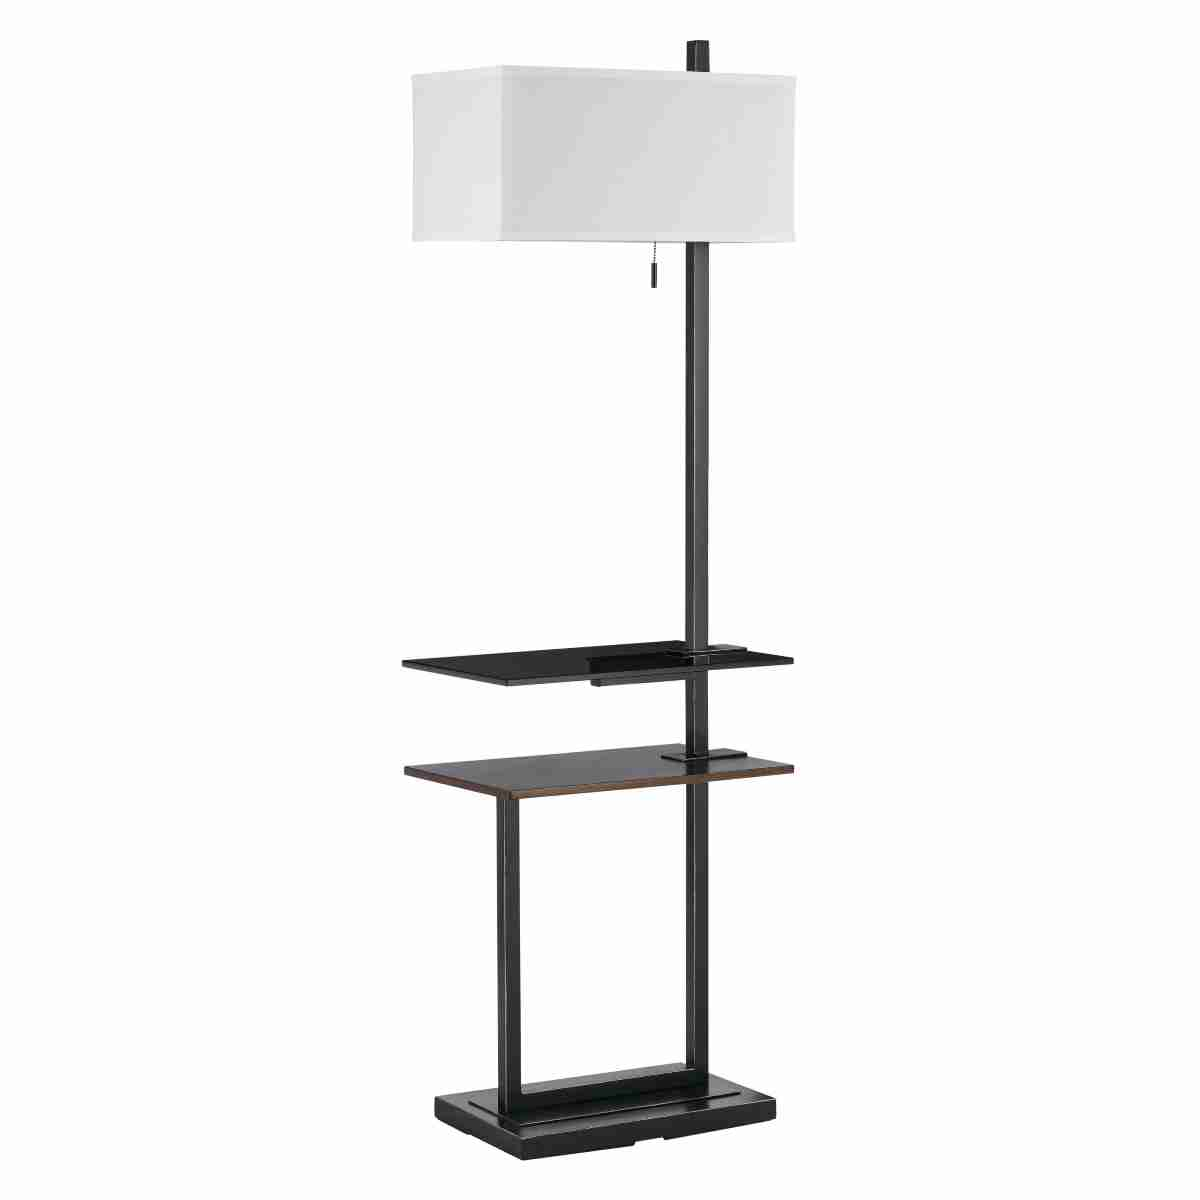 Floor lamp with tray table decor ideasdecor ideas for Floor lamp with table